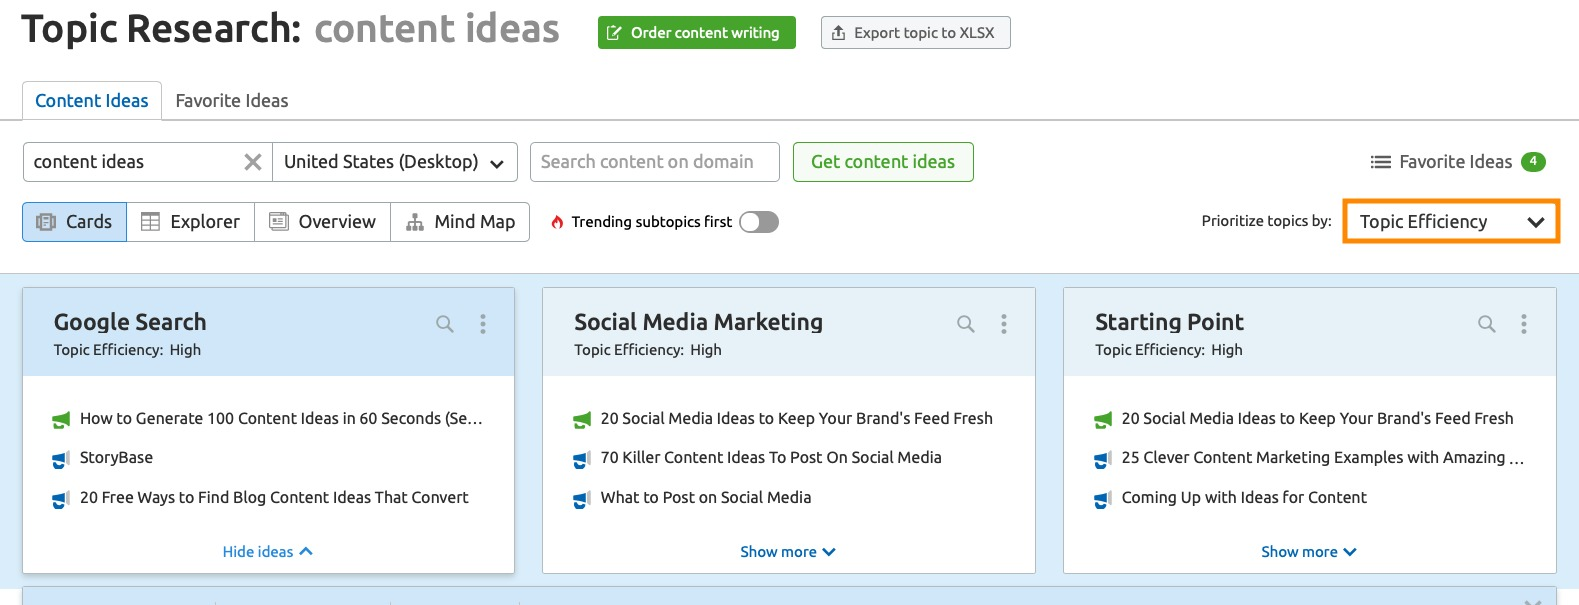 How to Find Relevant Topics with Good SEO Potential image 2